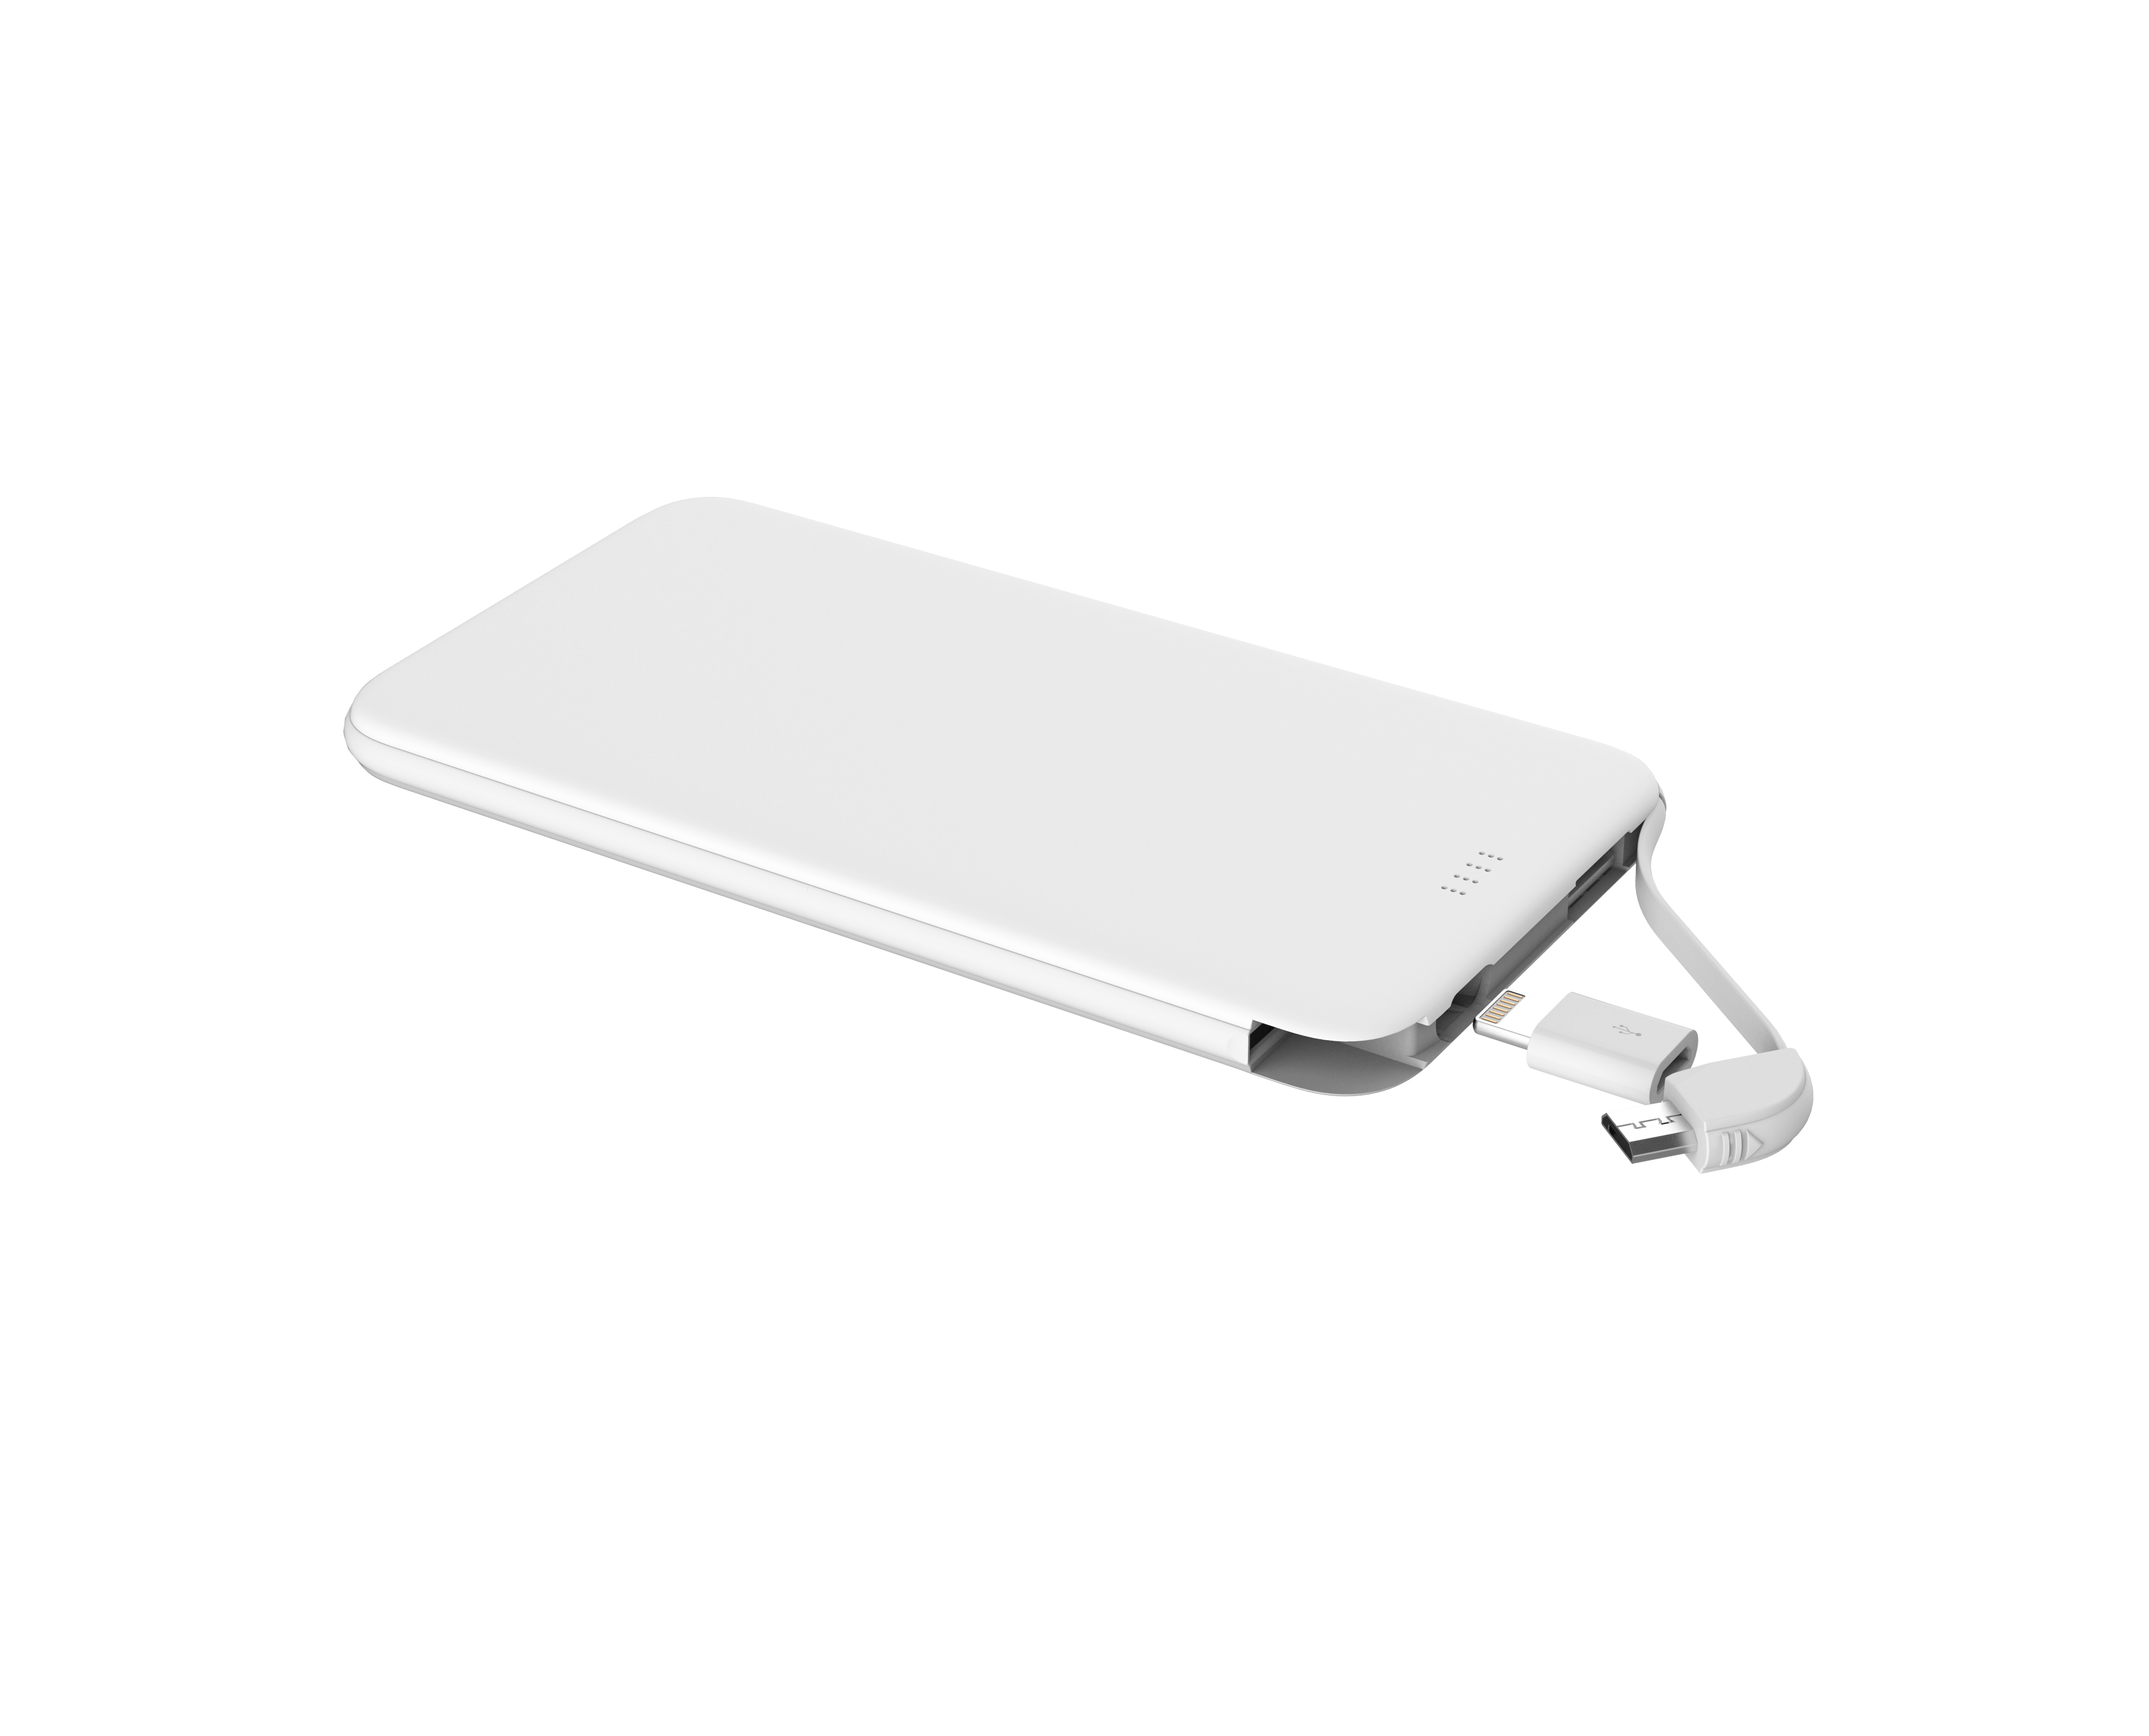 Ultra Thin mobile Power Bank 5000mah with Built In USB Cable